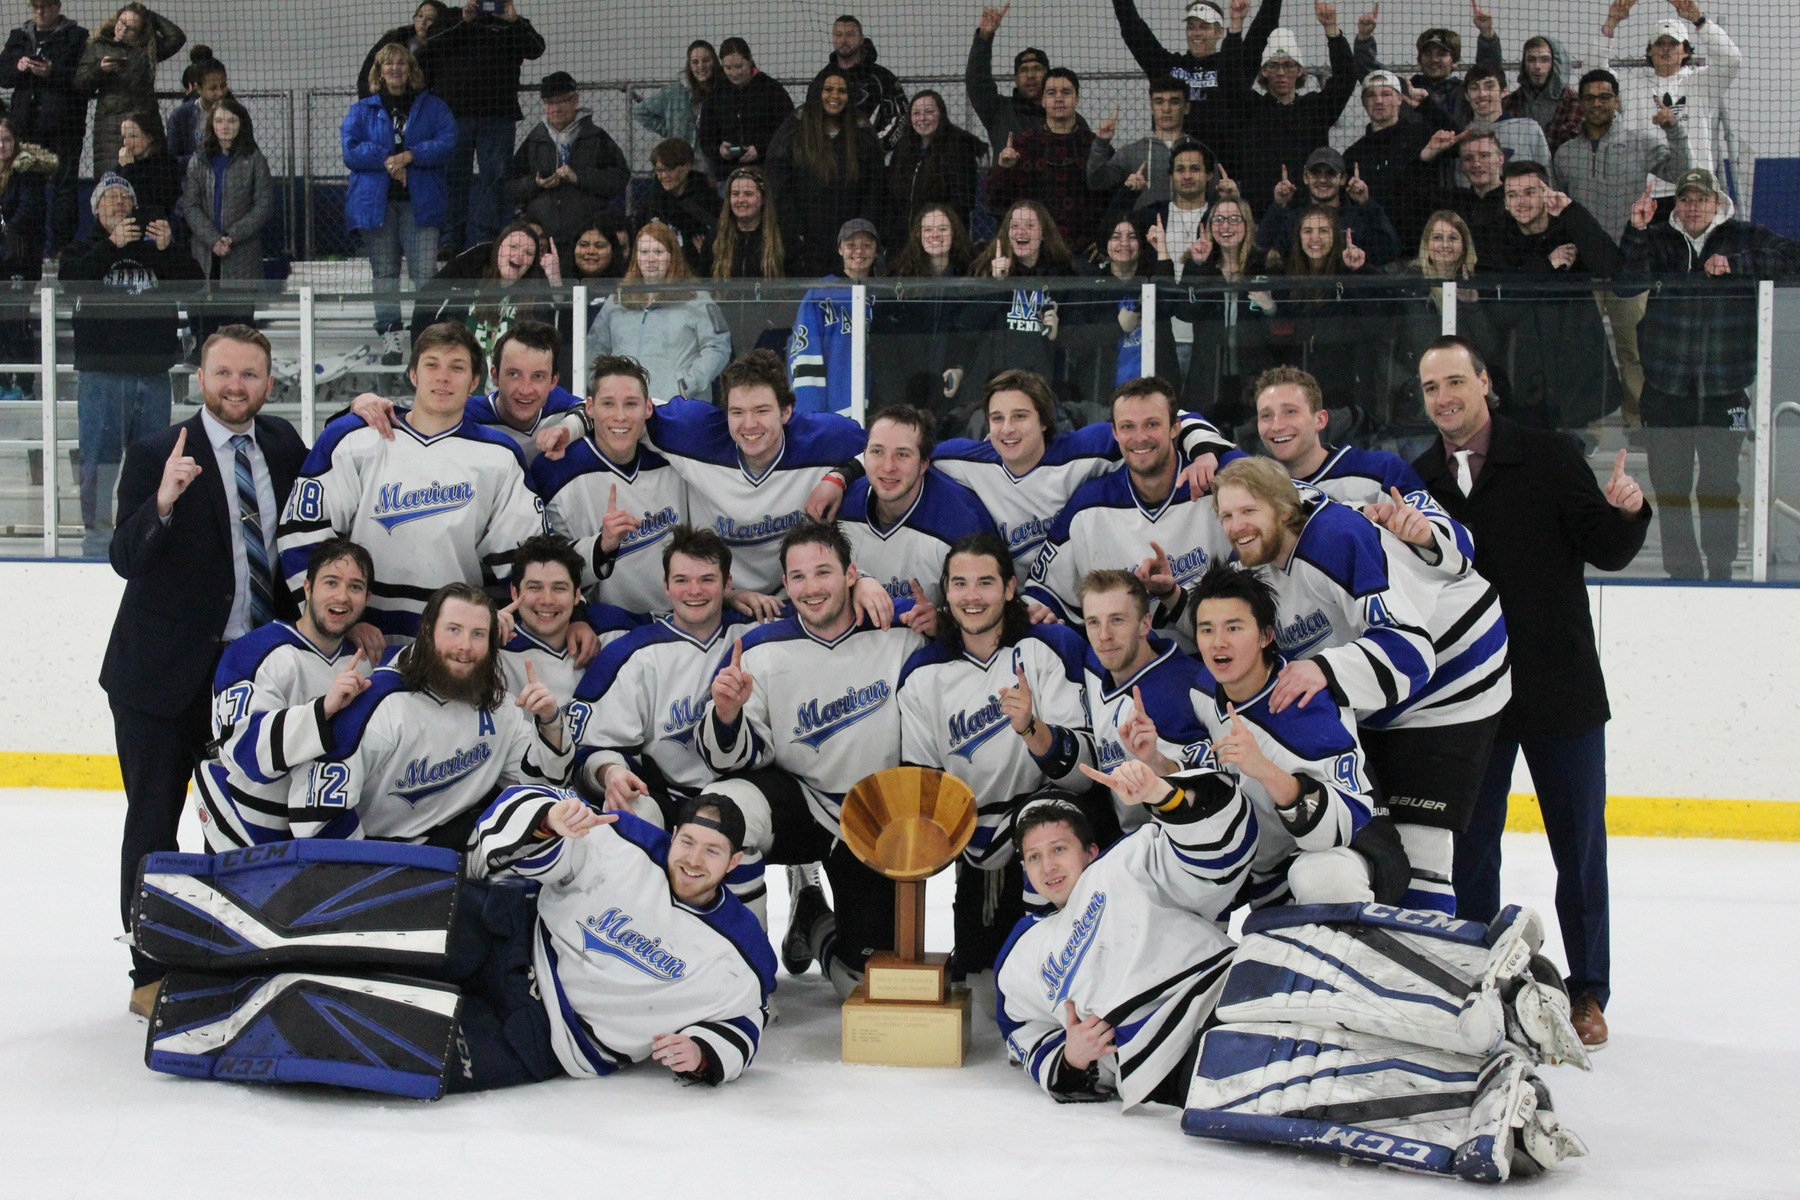 Marian gathers for a team photo with the Hap Cup